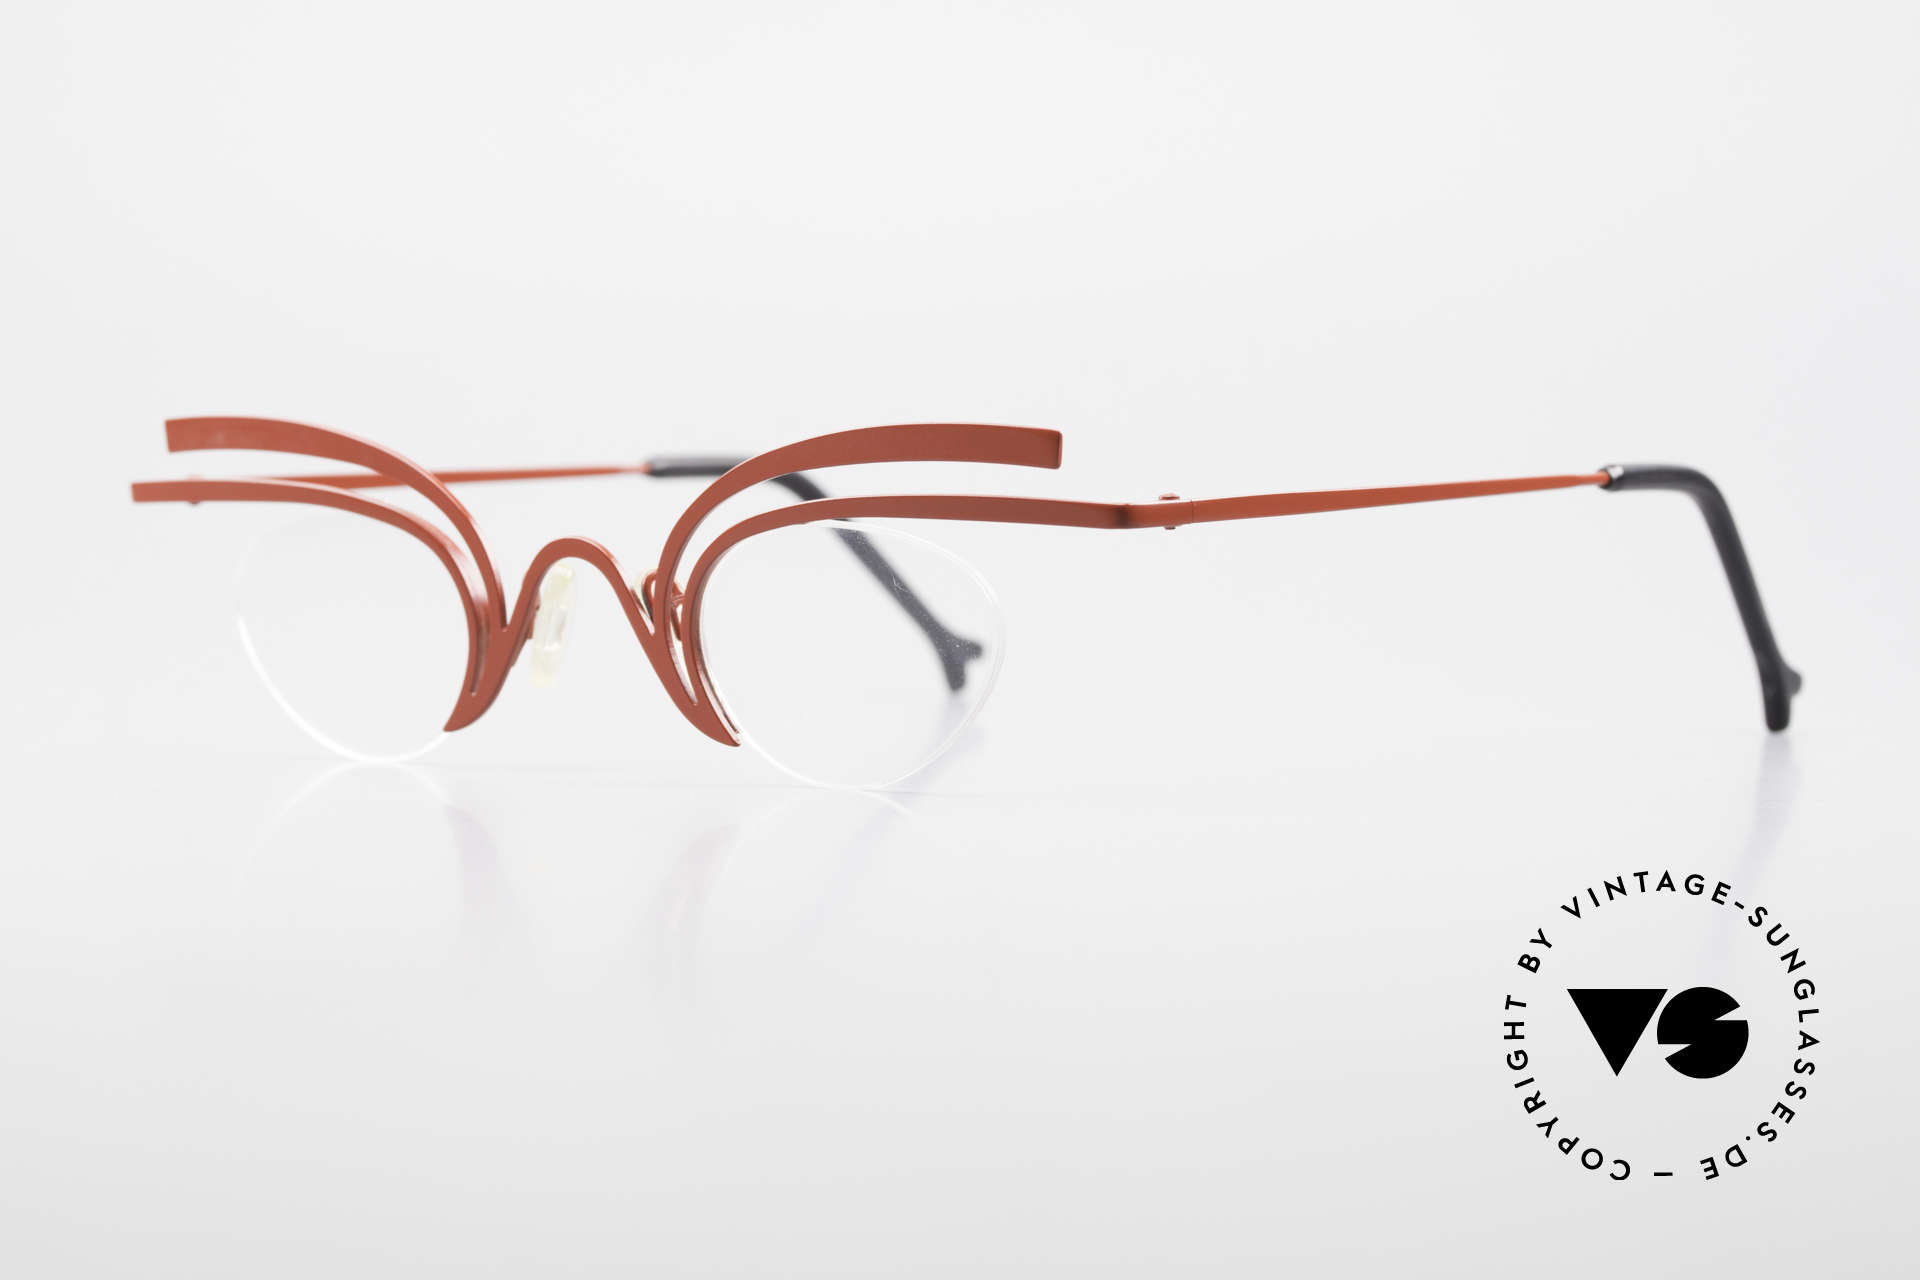 Theo Belgium Fly Crazy Vintage Ladies Glasses, extraordinary 90s eyeglasses in top-quality; art object, Made for Women